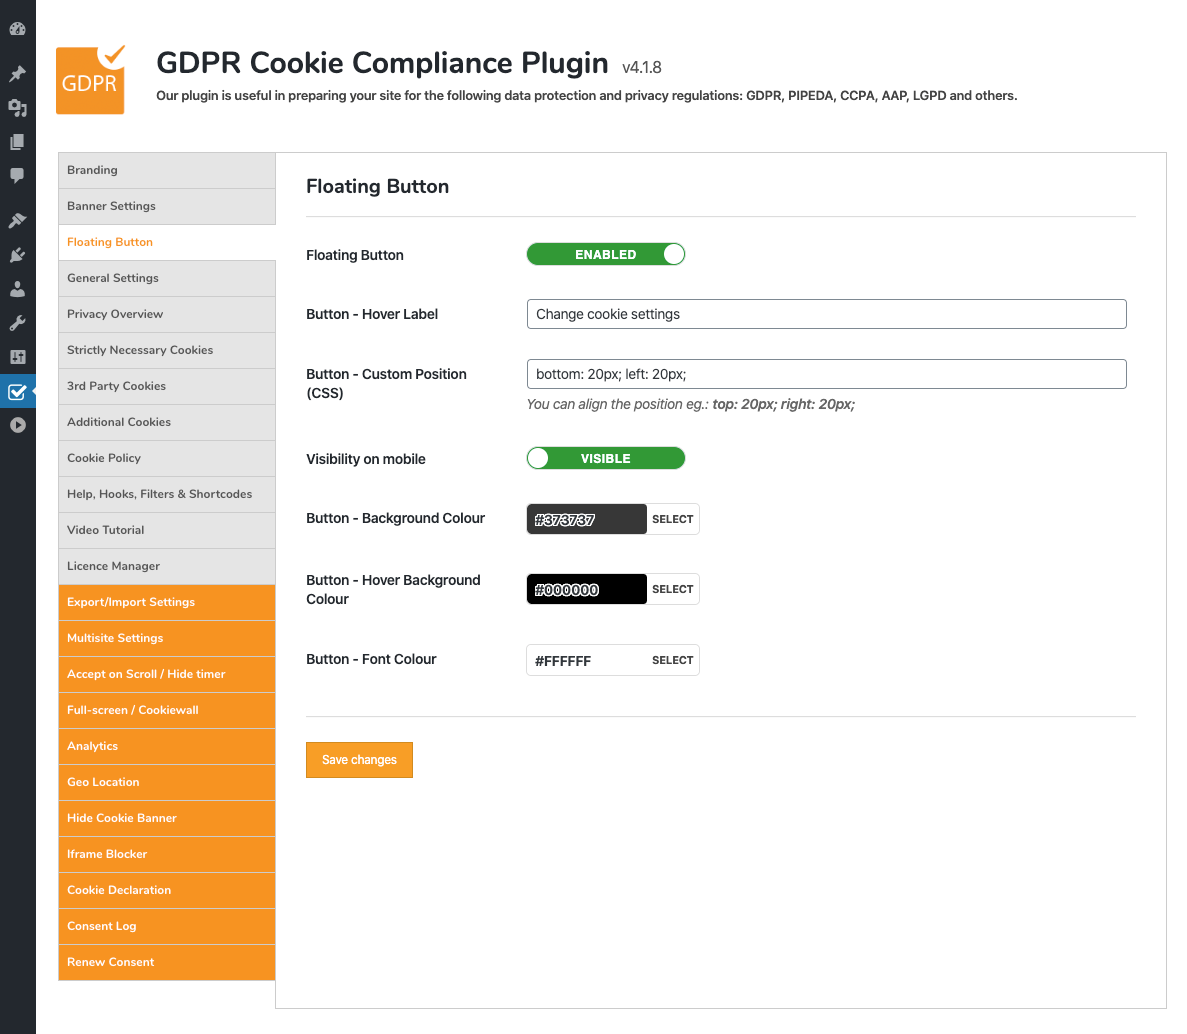 gdpr cookie compliance admin additional cookies